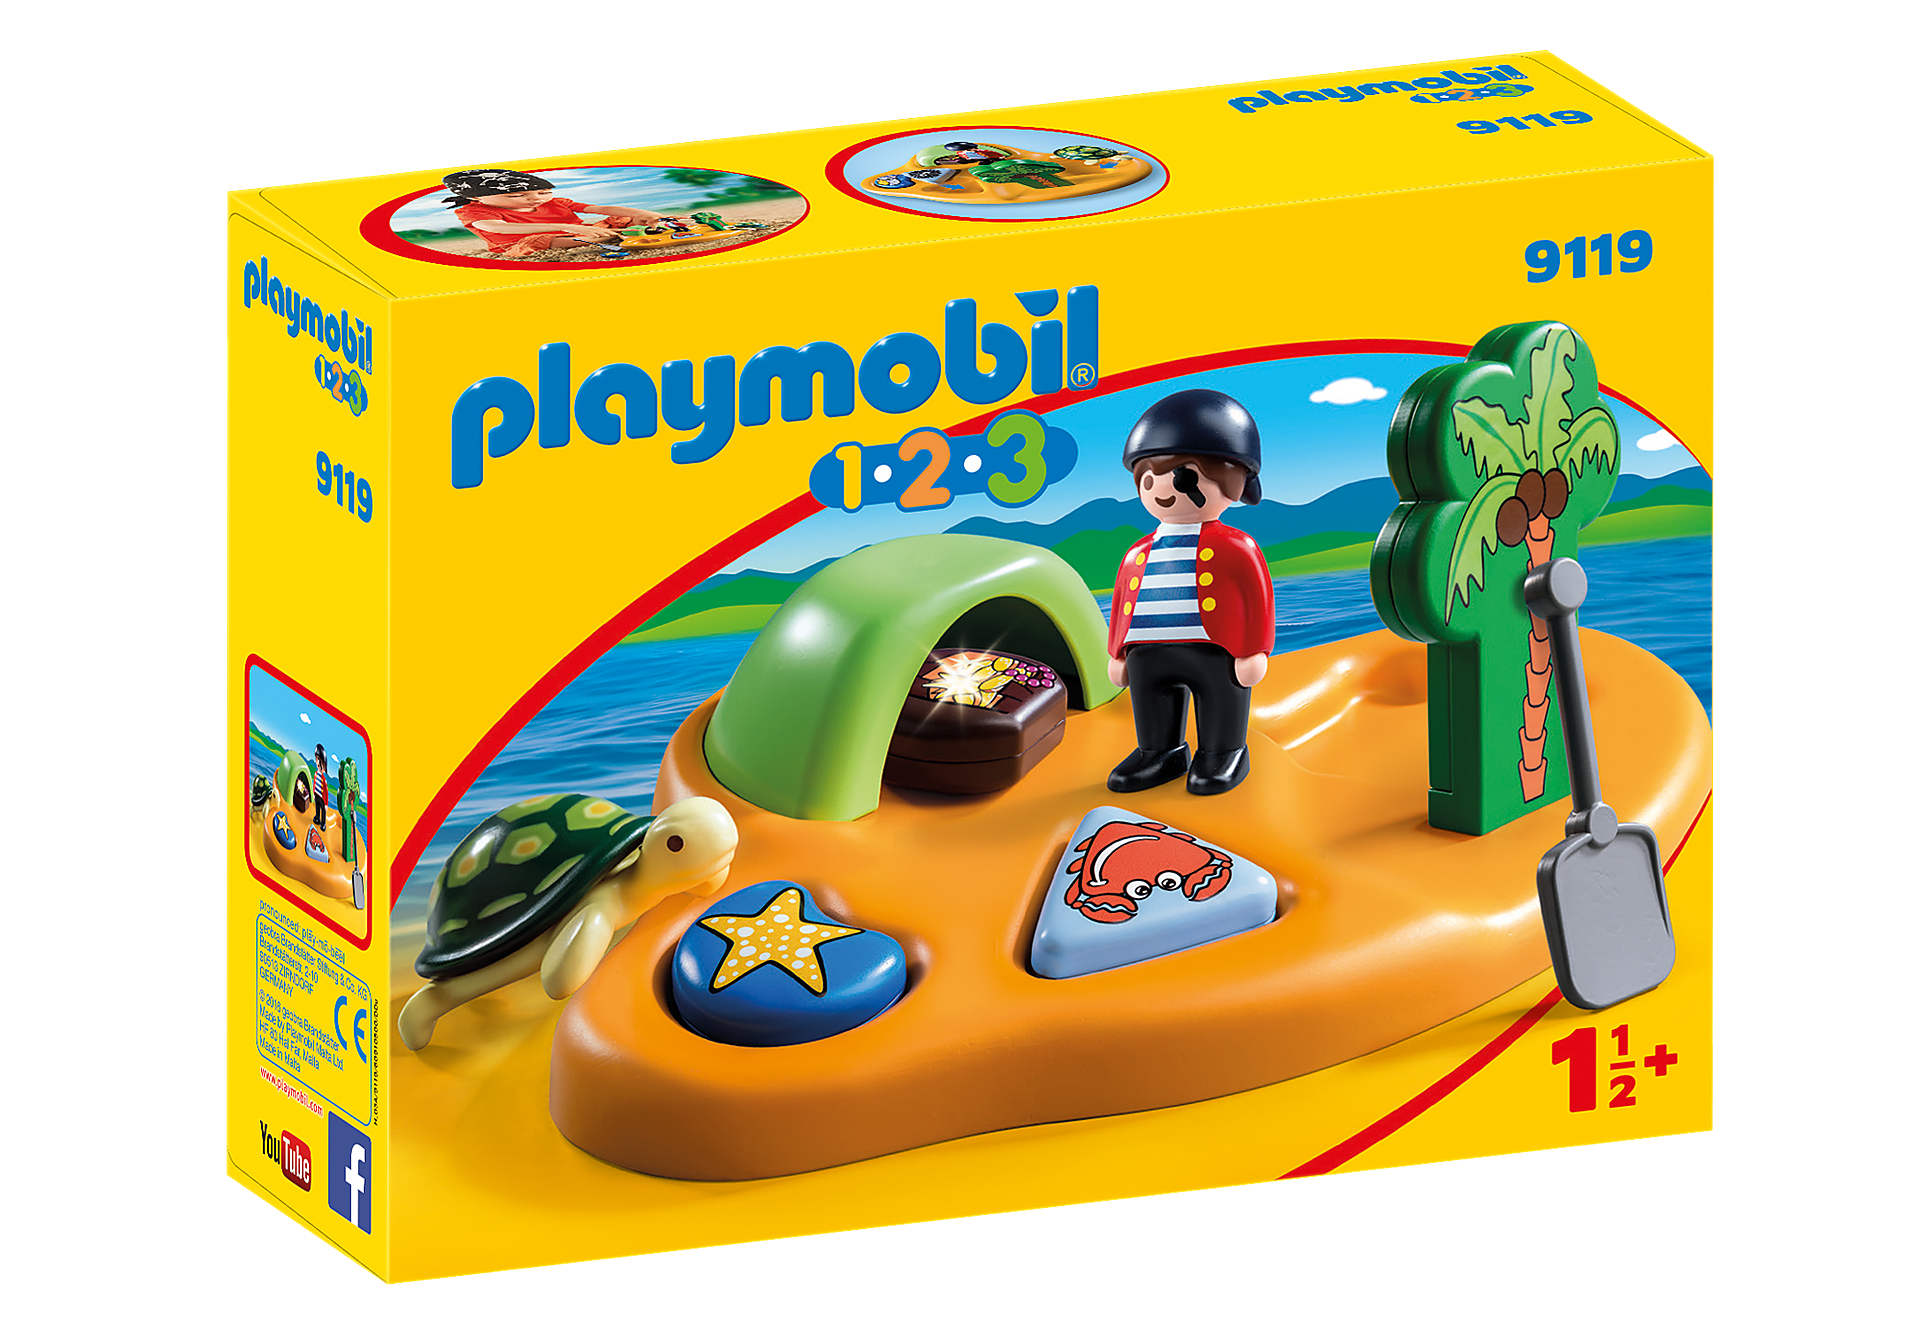 http://media.playmobil.com/i/playmobil/9119_product_box_front/Pirate Island